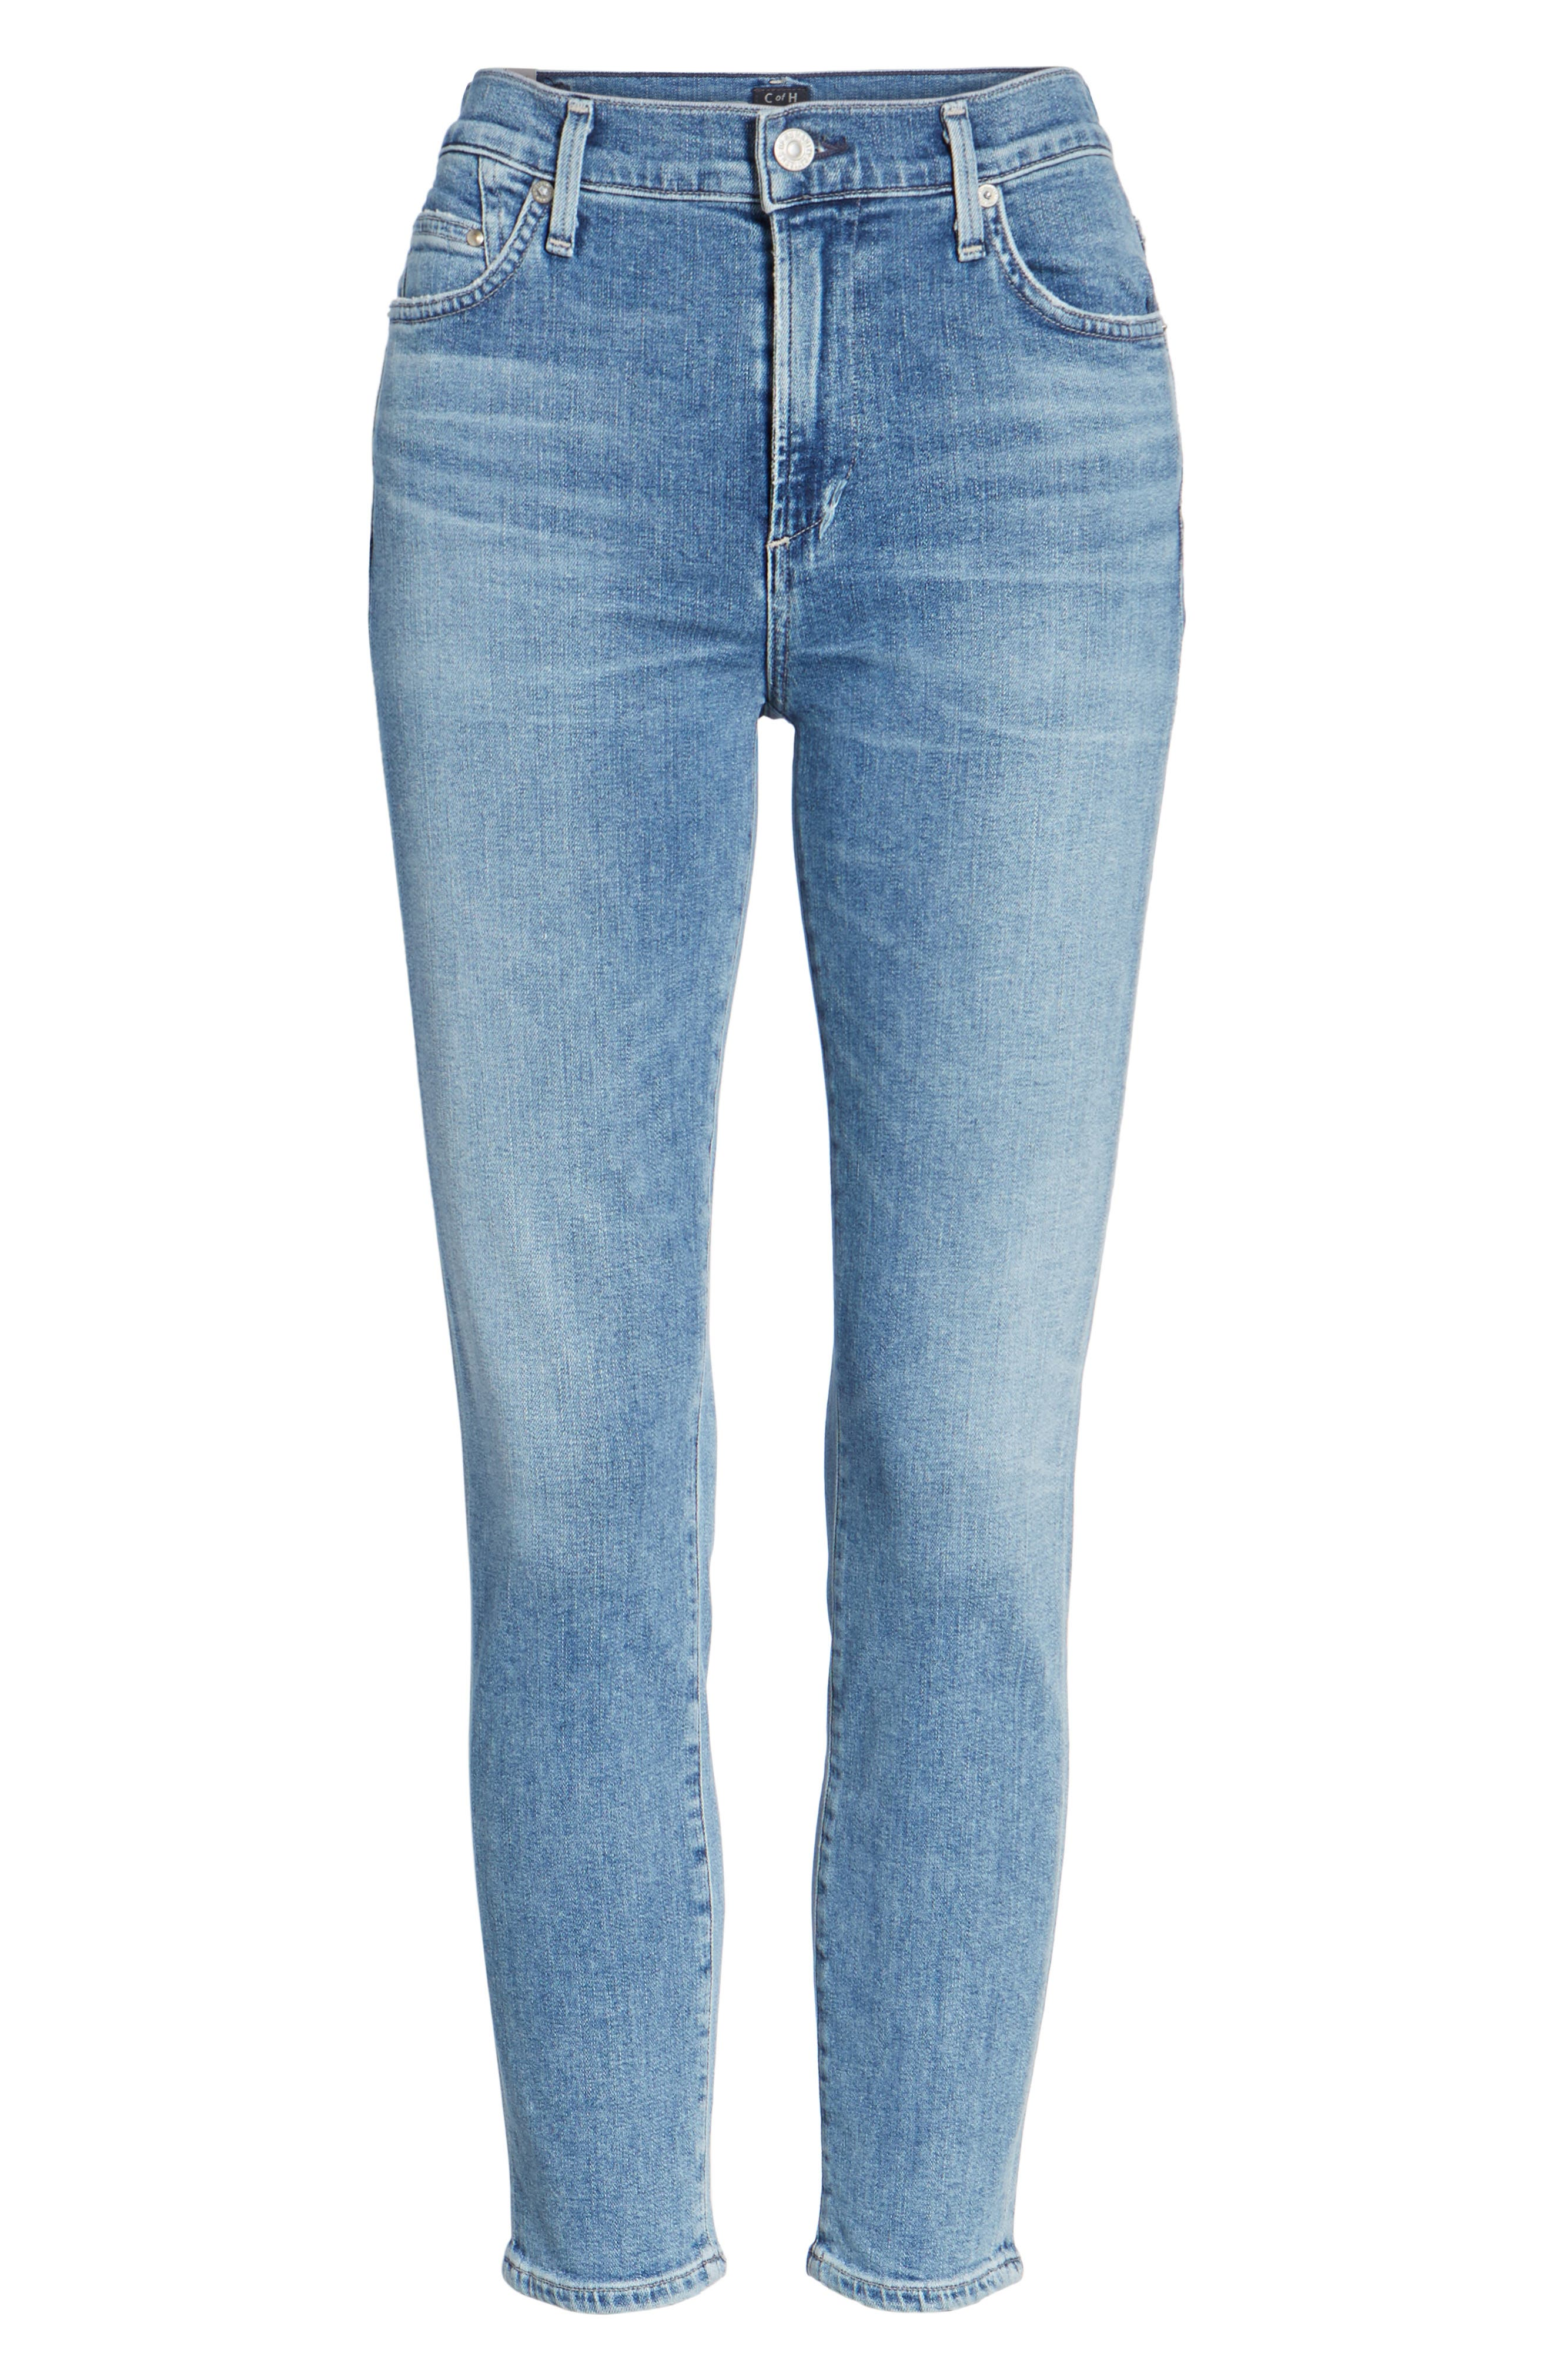 Rocket High Waist Crop Skinny Jeans,                             Alternate thumbnail 2, color,